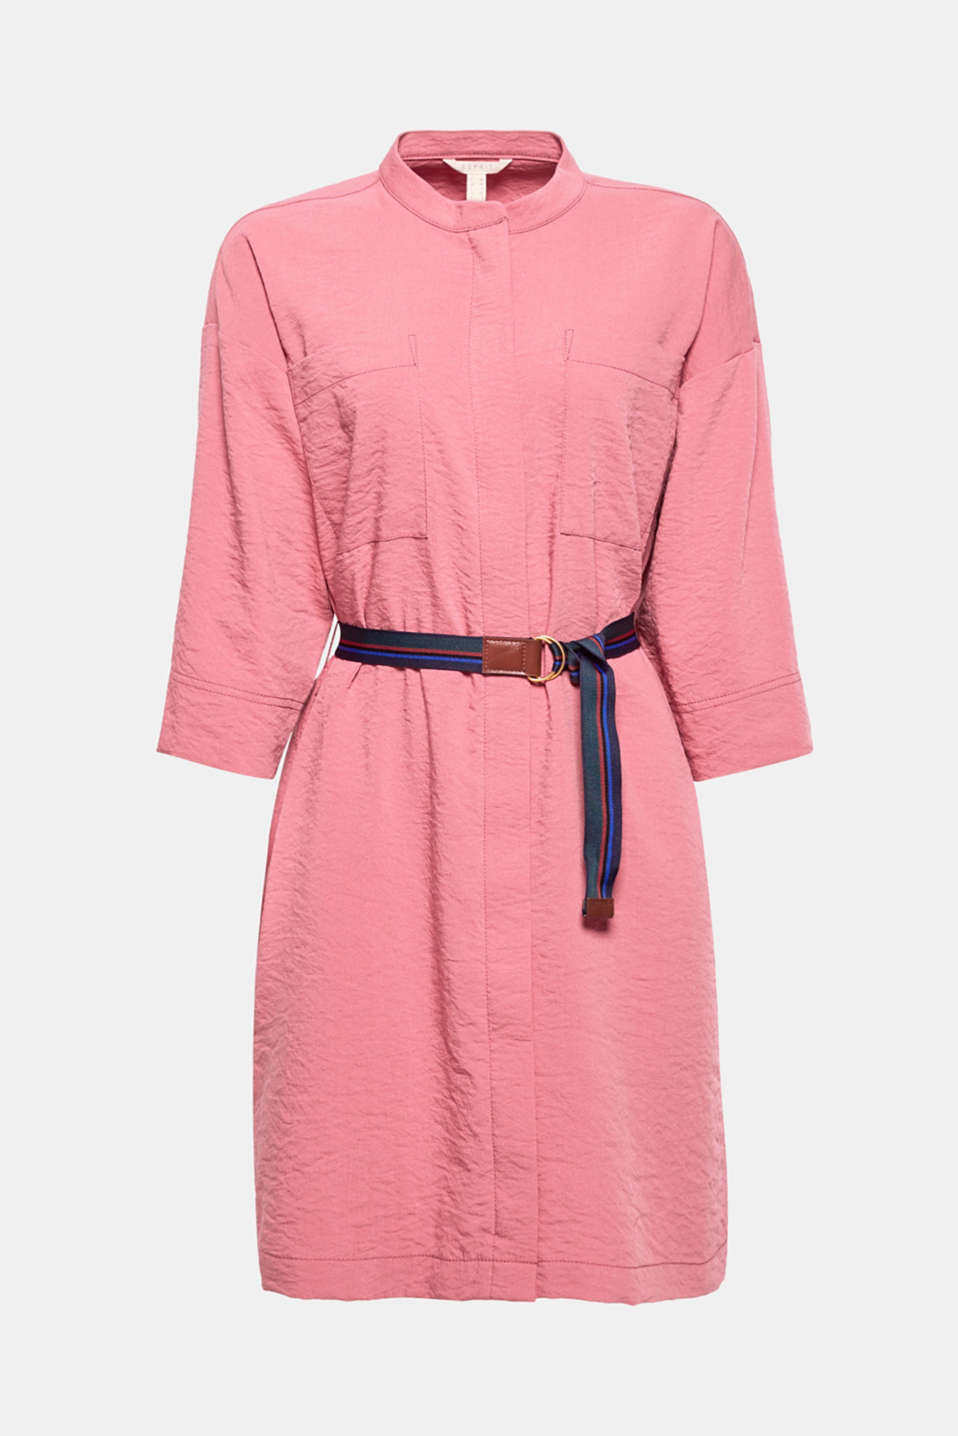 The loose oversized style and distinctive striped belt make this dress an on-trend It piece!